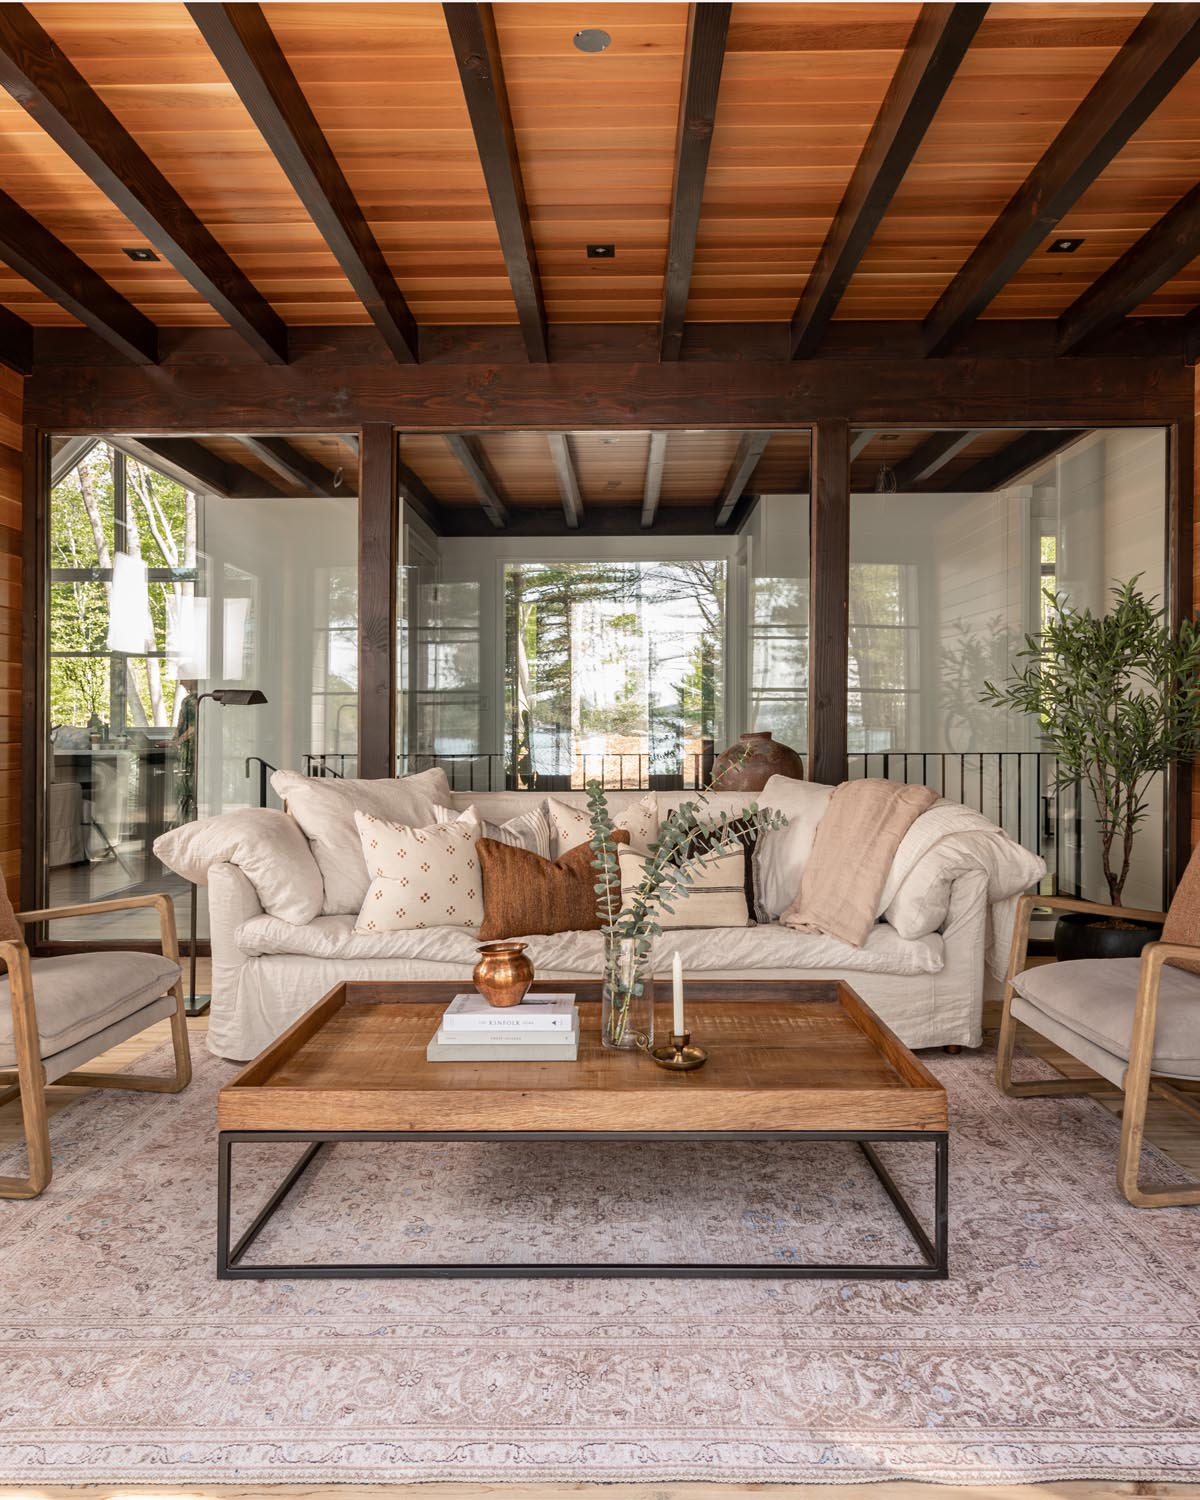 Wood paneling sunroom with couch and chairs.